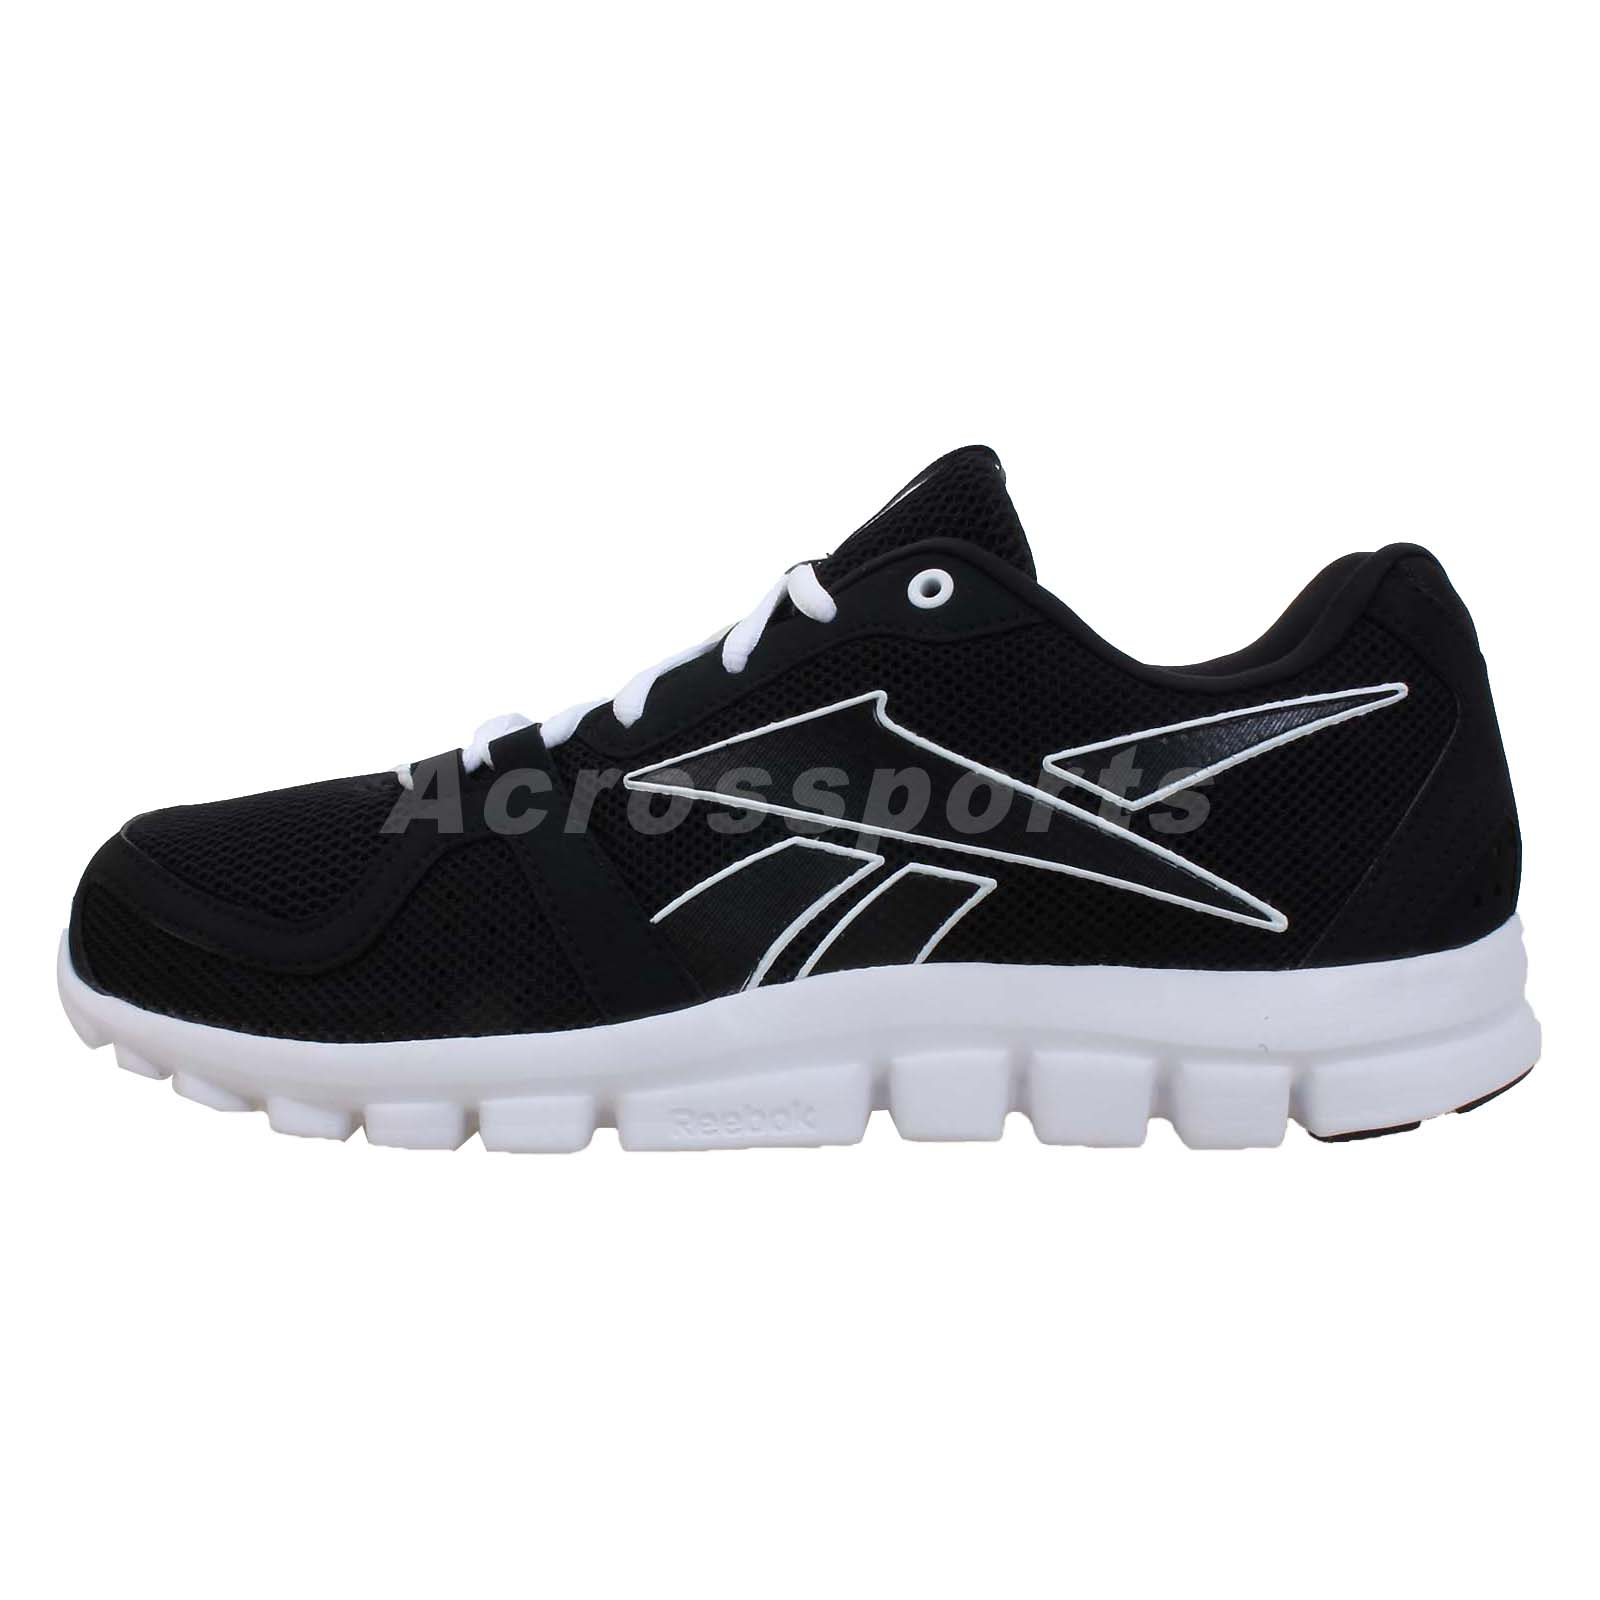 reebok yourflex run 40 black white 2013 mens running